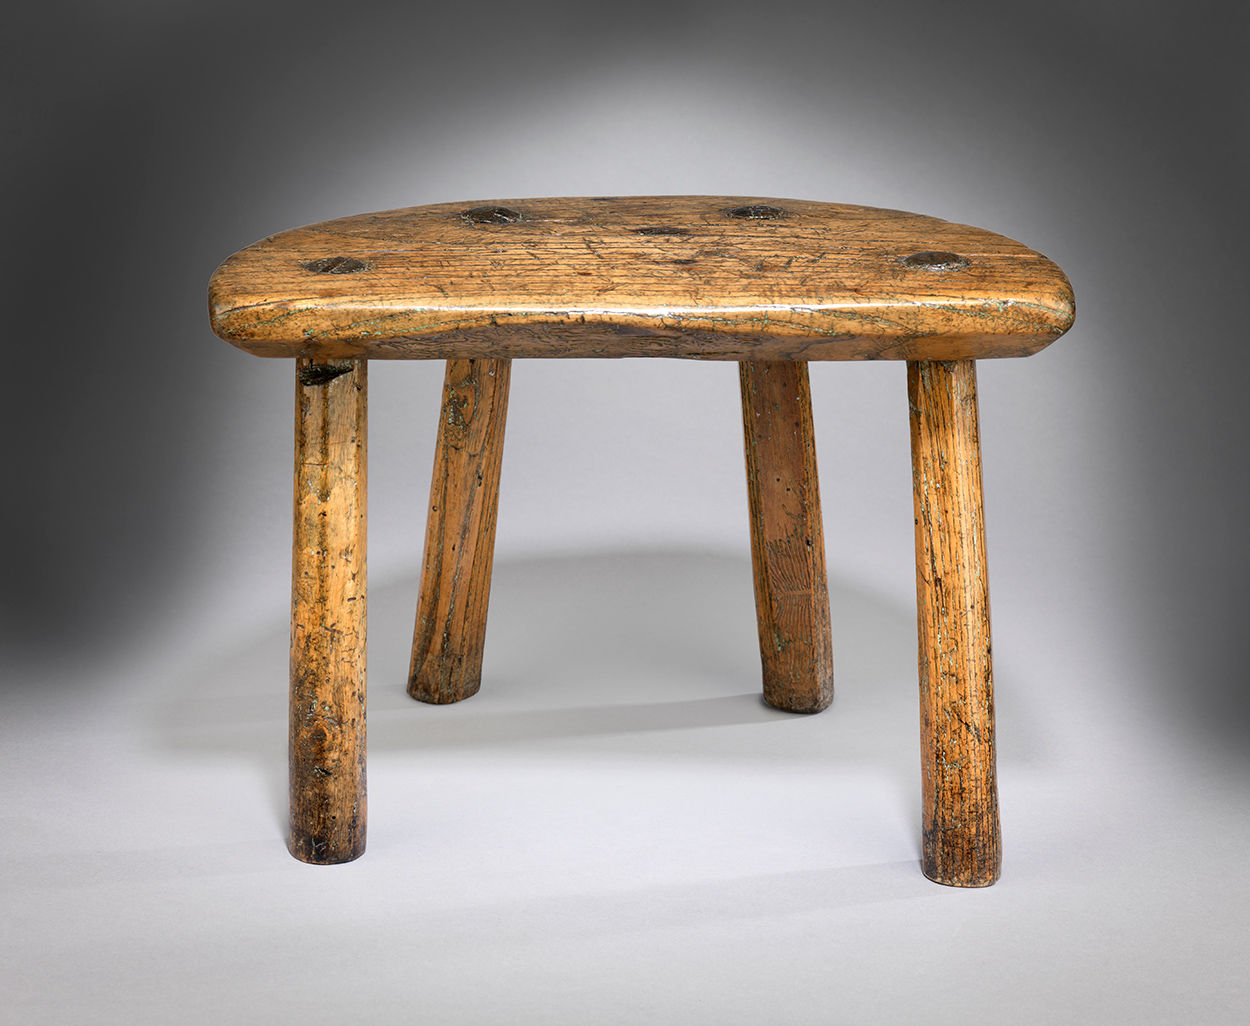 Primitive Georgian Semi-Circular Stool